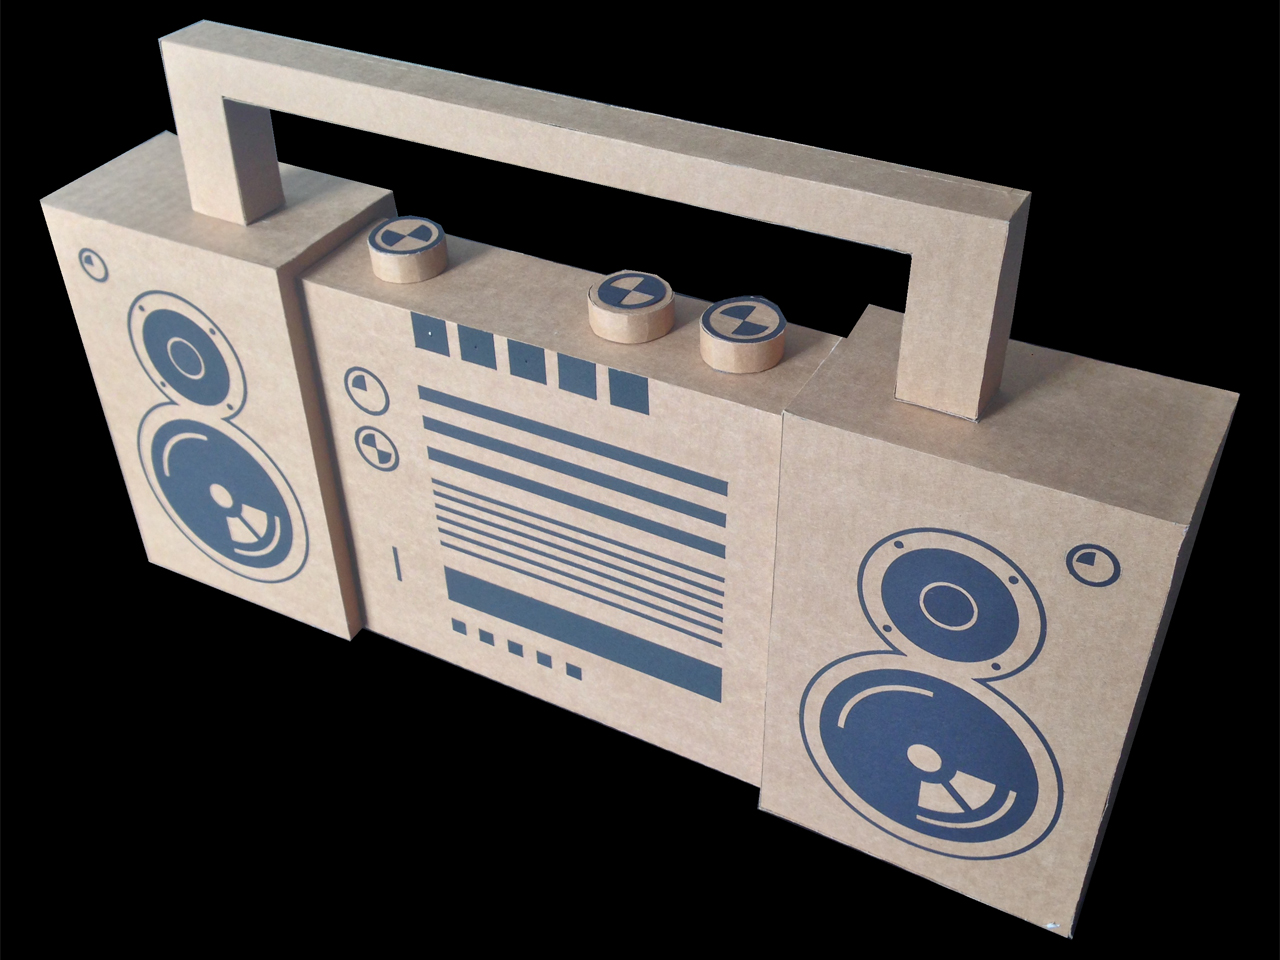 Cardboard BoomBox (quick 'n' dirty concept modelling 2D into 3D)